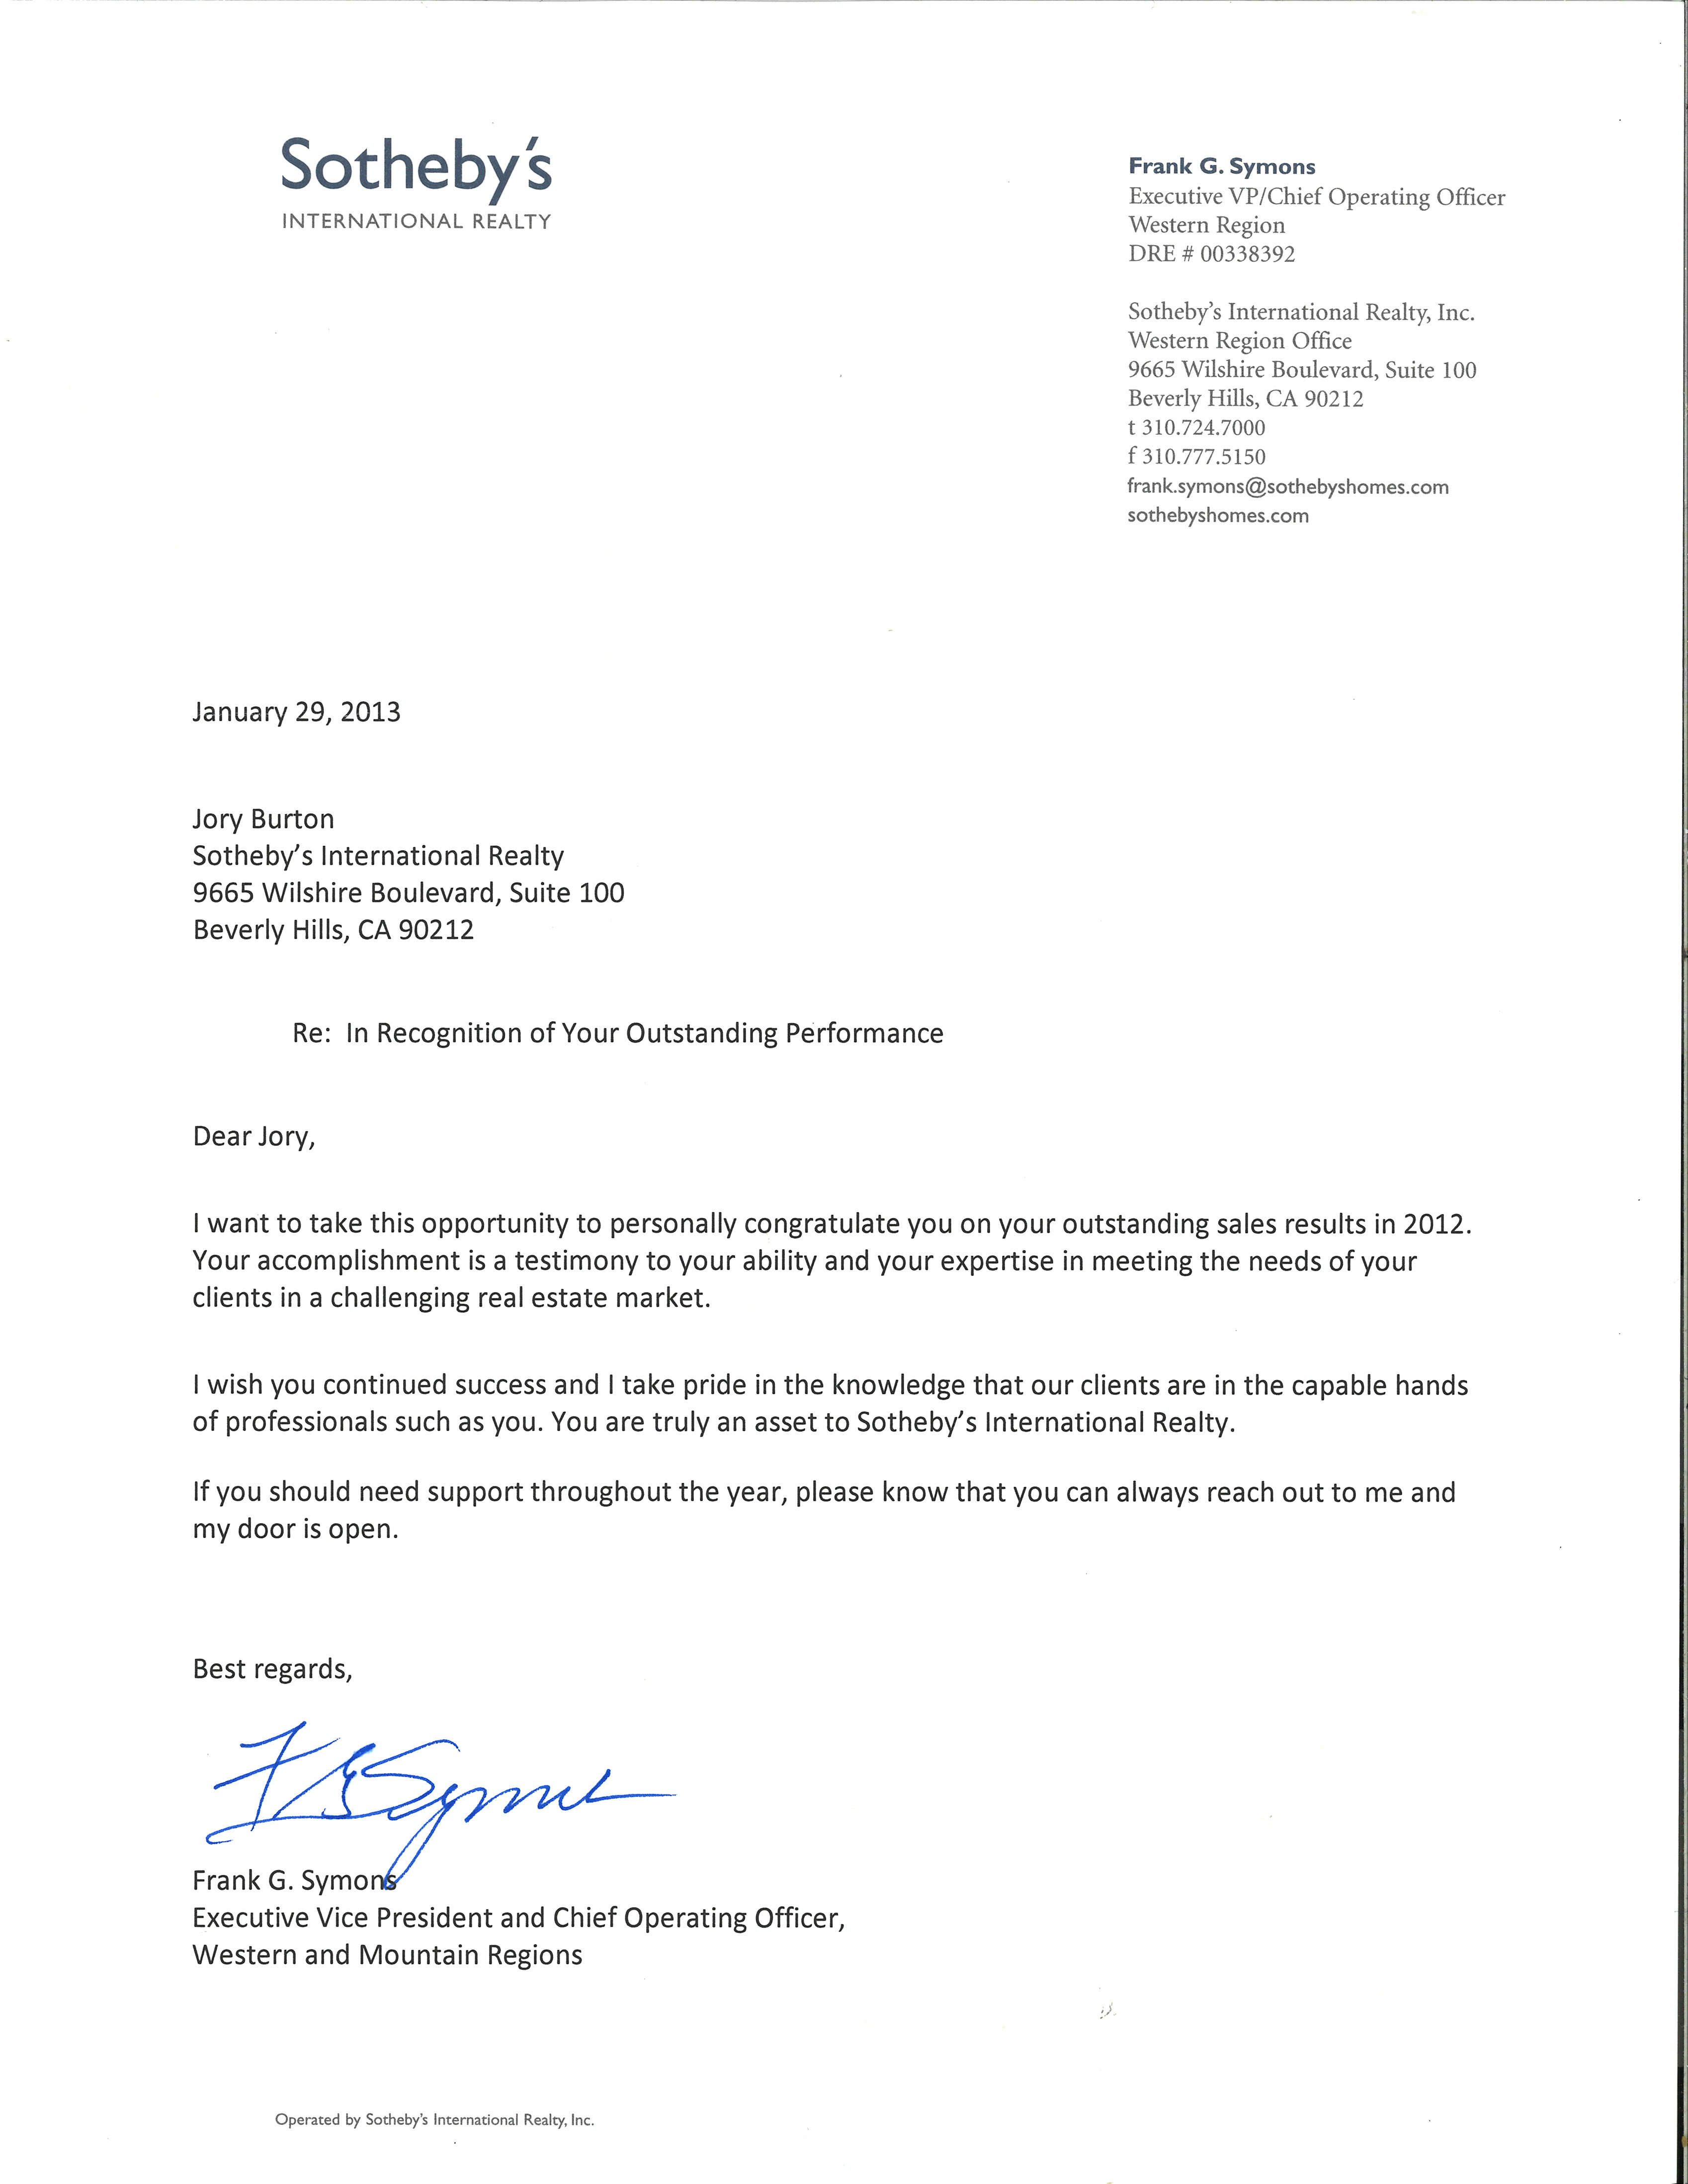 Letter of Recognition from Sotheby's Exec. V.P. and C.O.O. Frank Symons